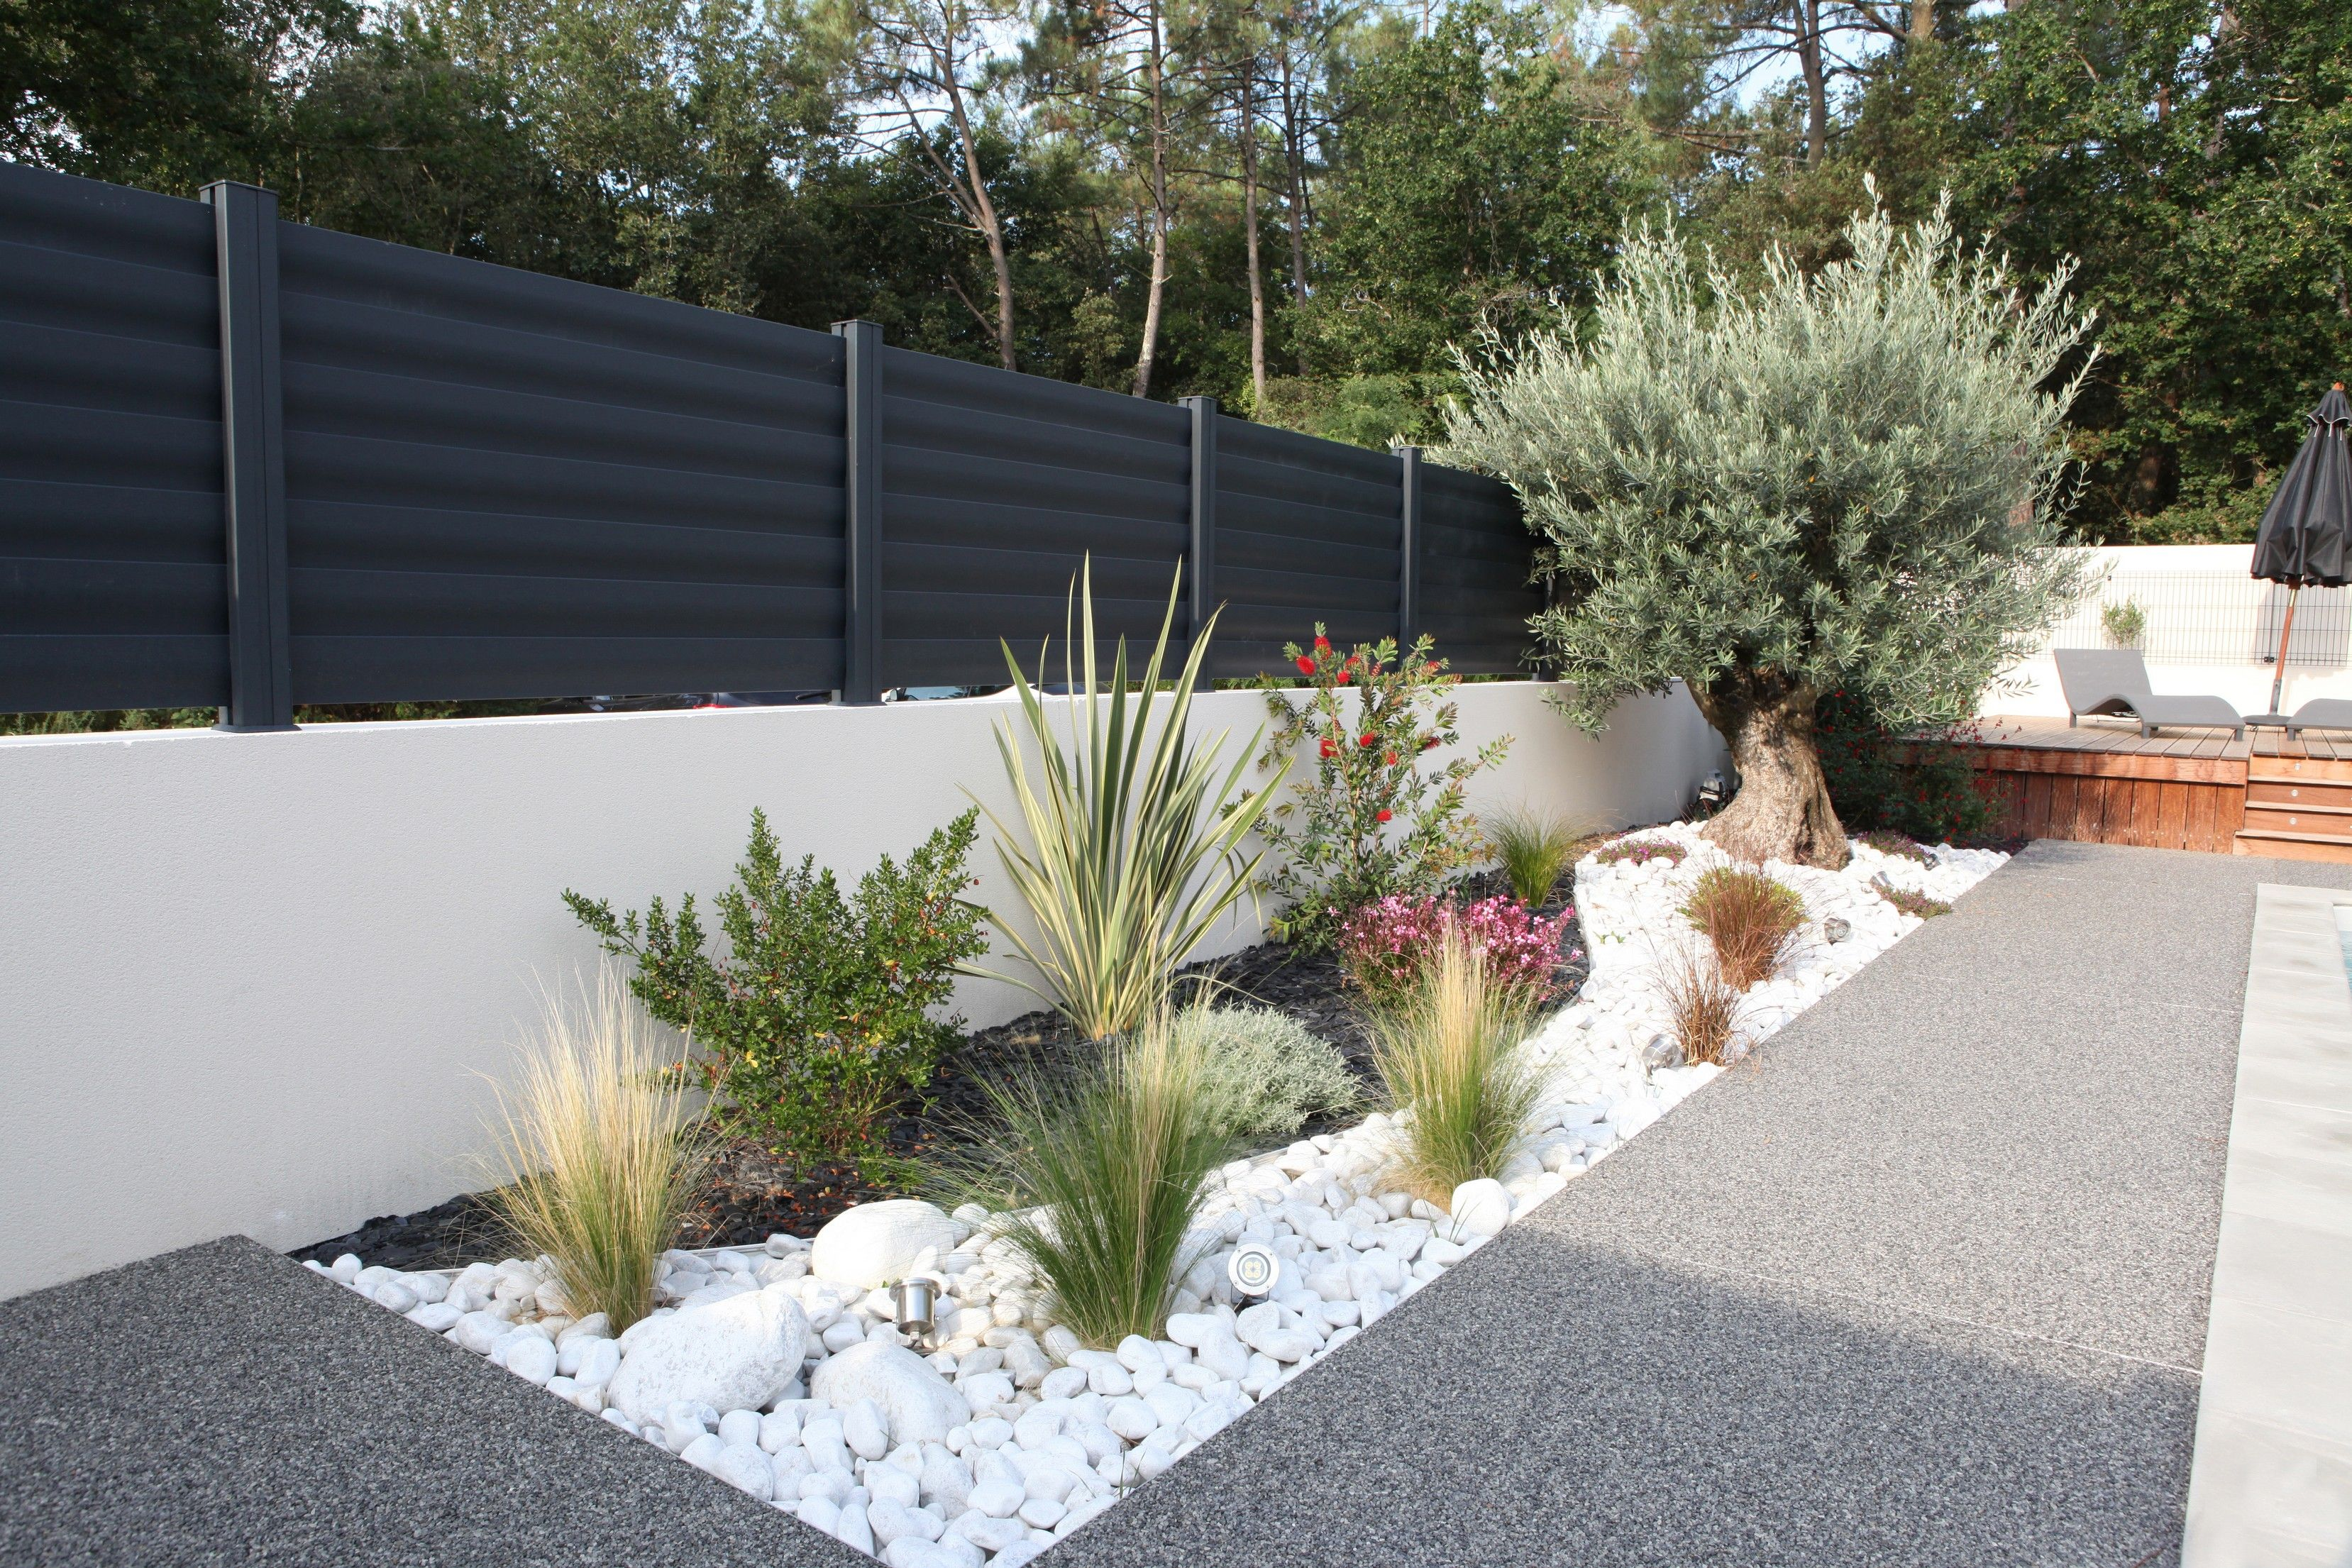 Cl tures aluminium mod le brise vue menuiserie cloturel for Exemple deco jardin zen